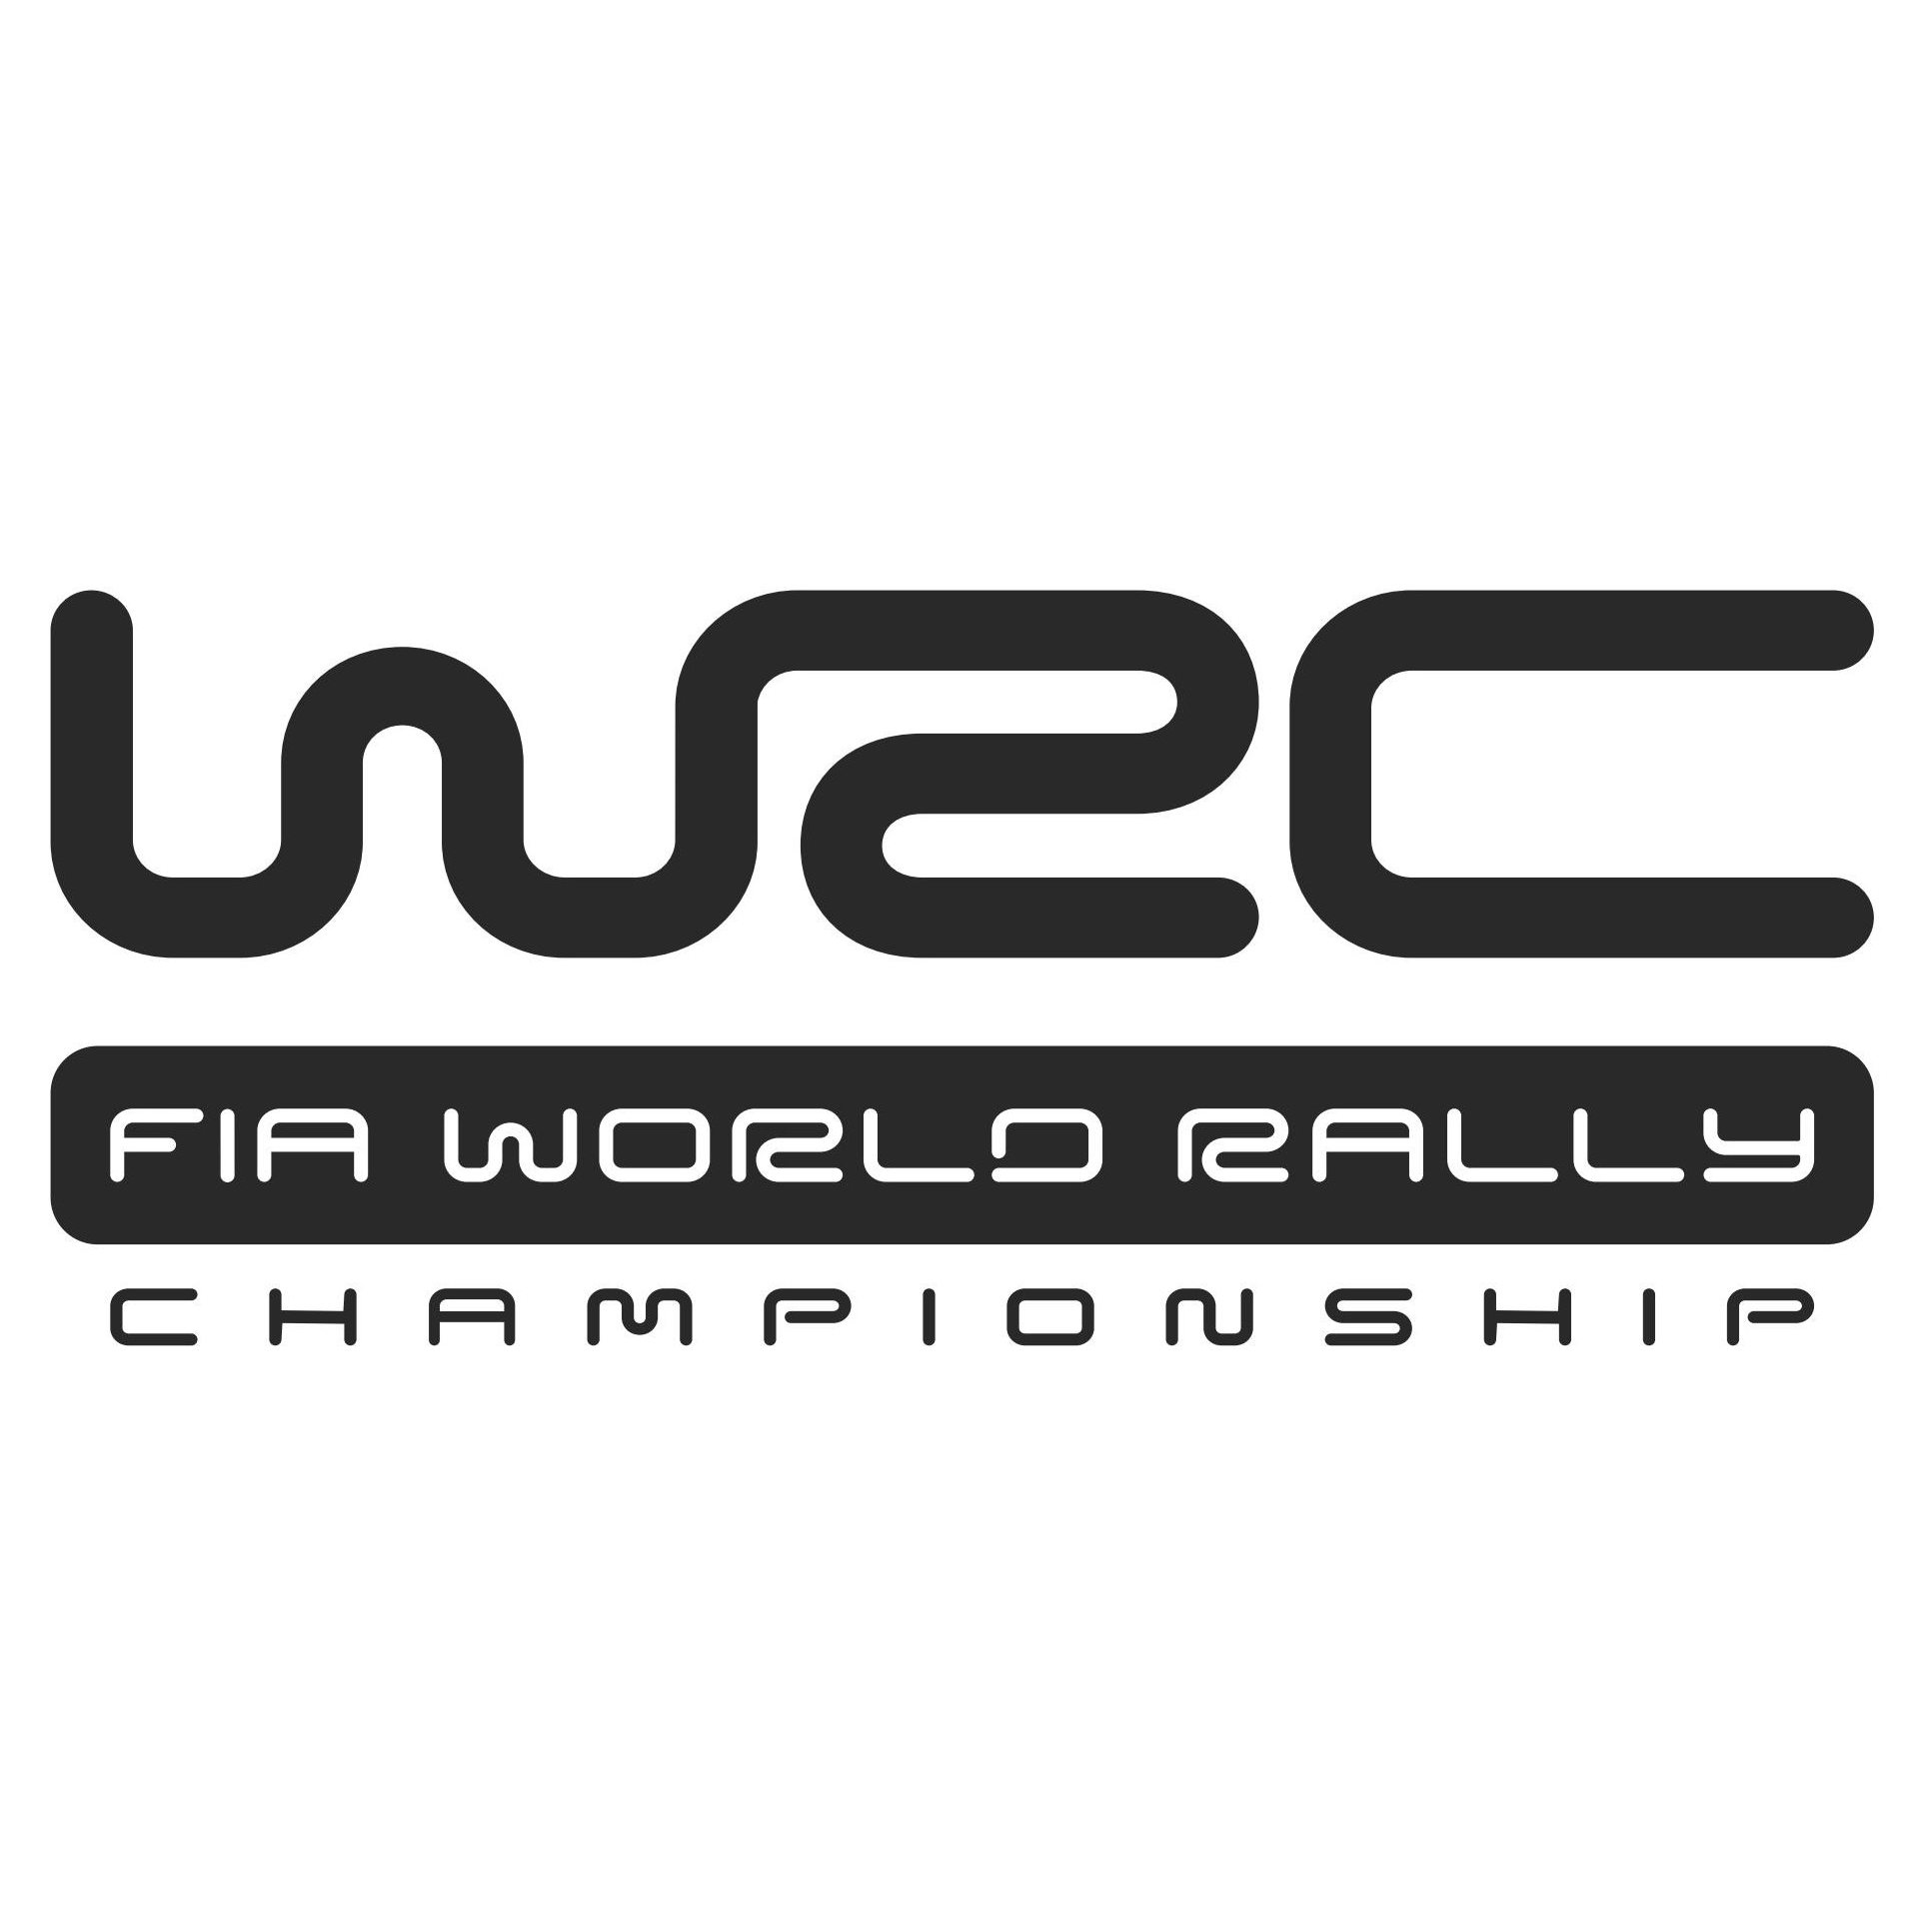 2017 World Rally Championship